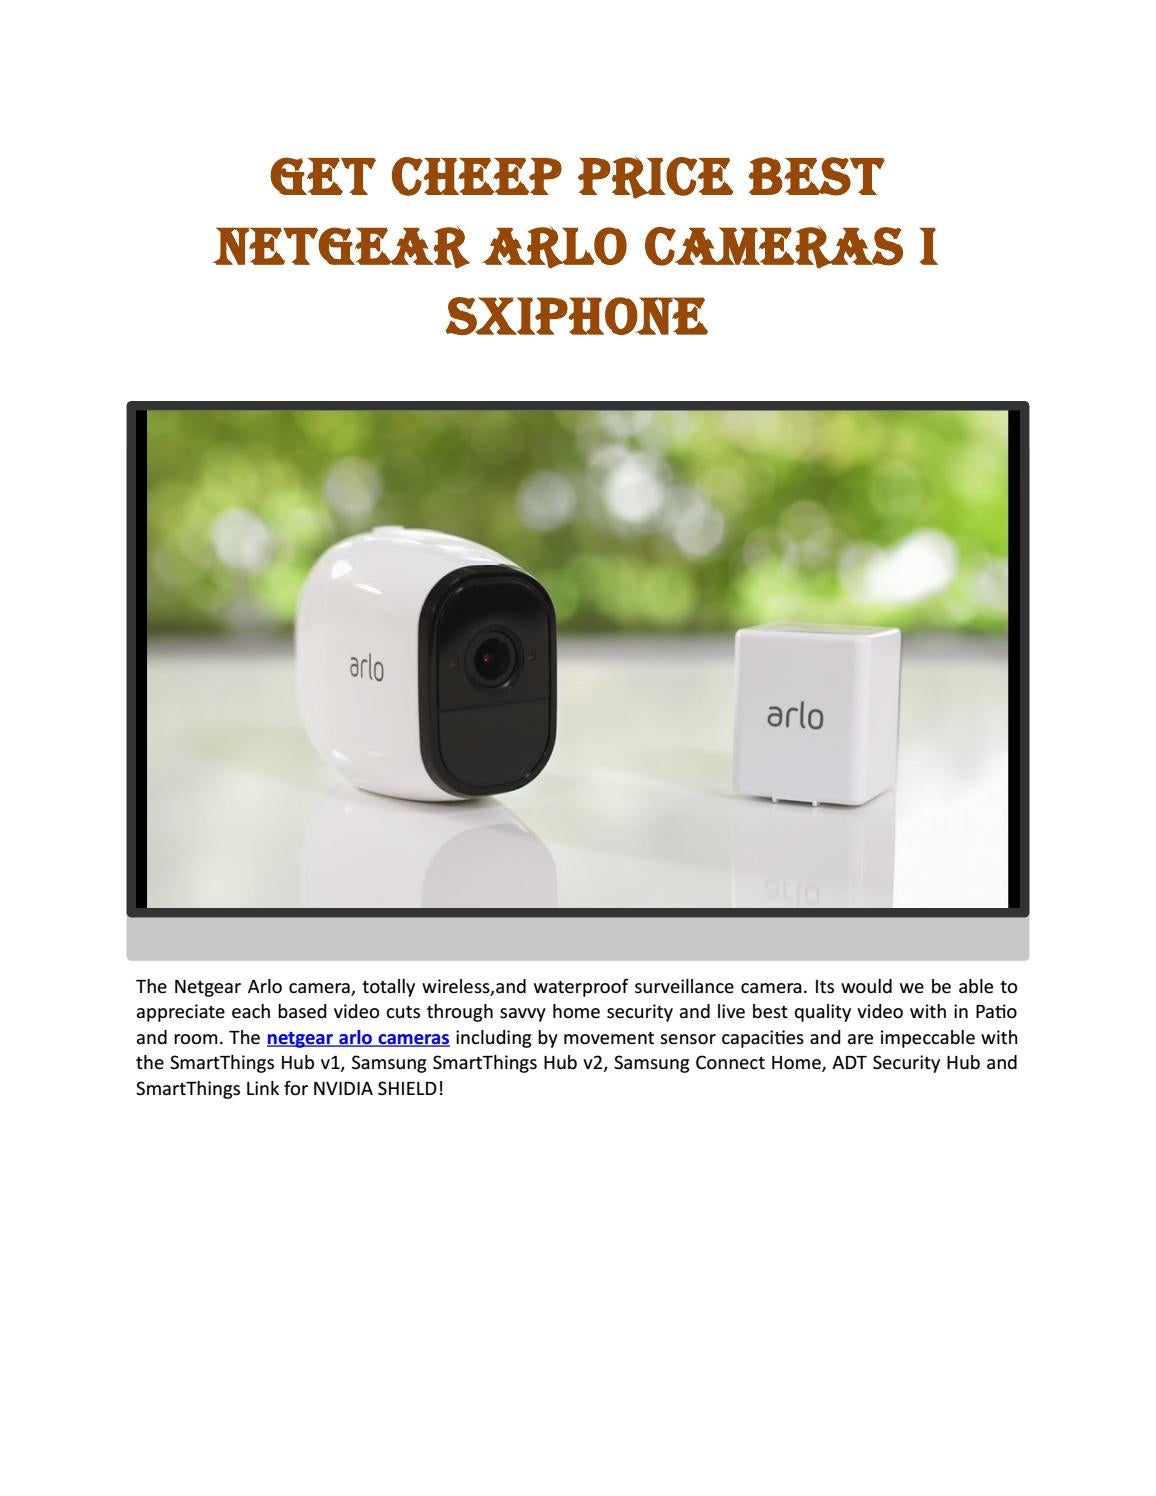 Get Cheep price best Netgear Arlo Cameras I sxiphone by